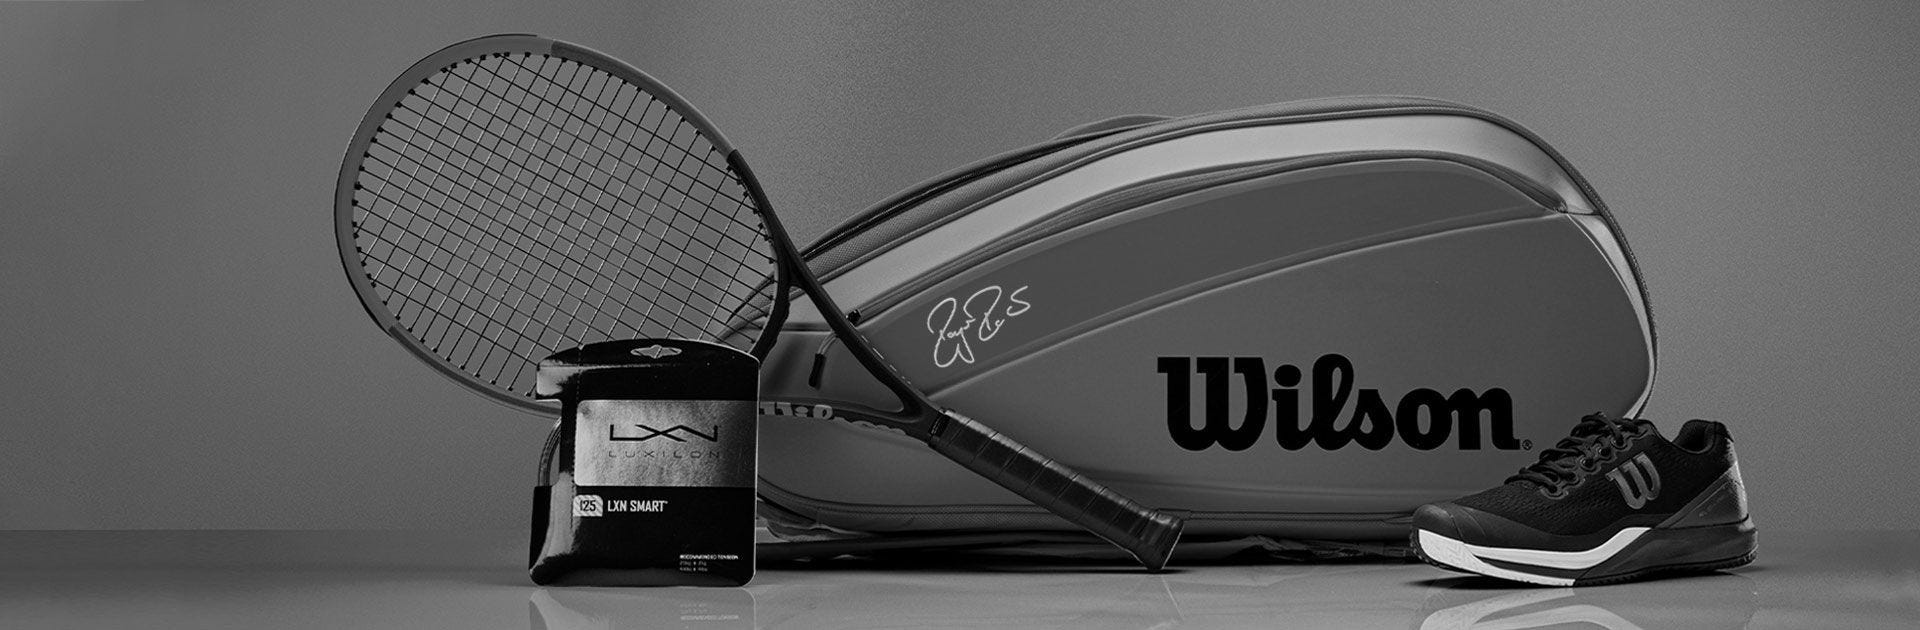 Deck The Courts | Tennis | Wilson Sporting Goods